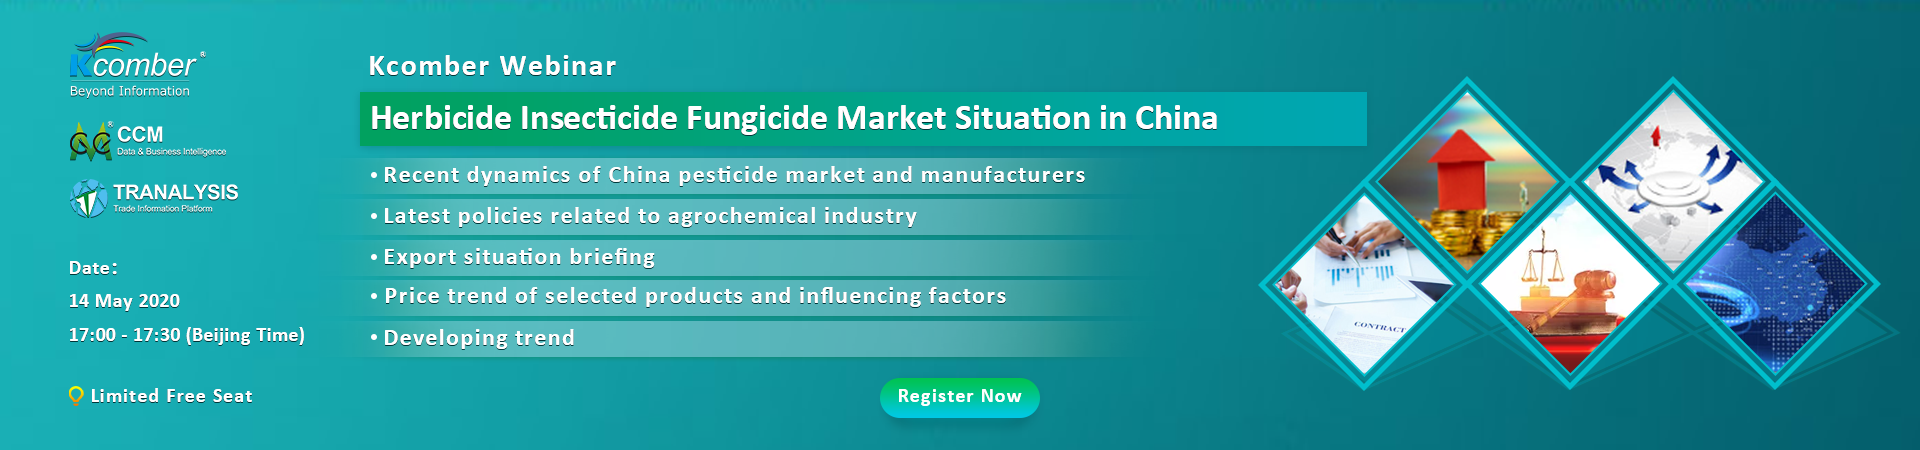 Herbicide, Insecticide,Fungicide Market Situation in China